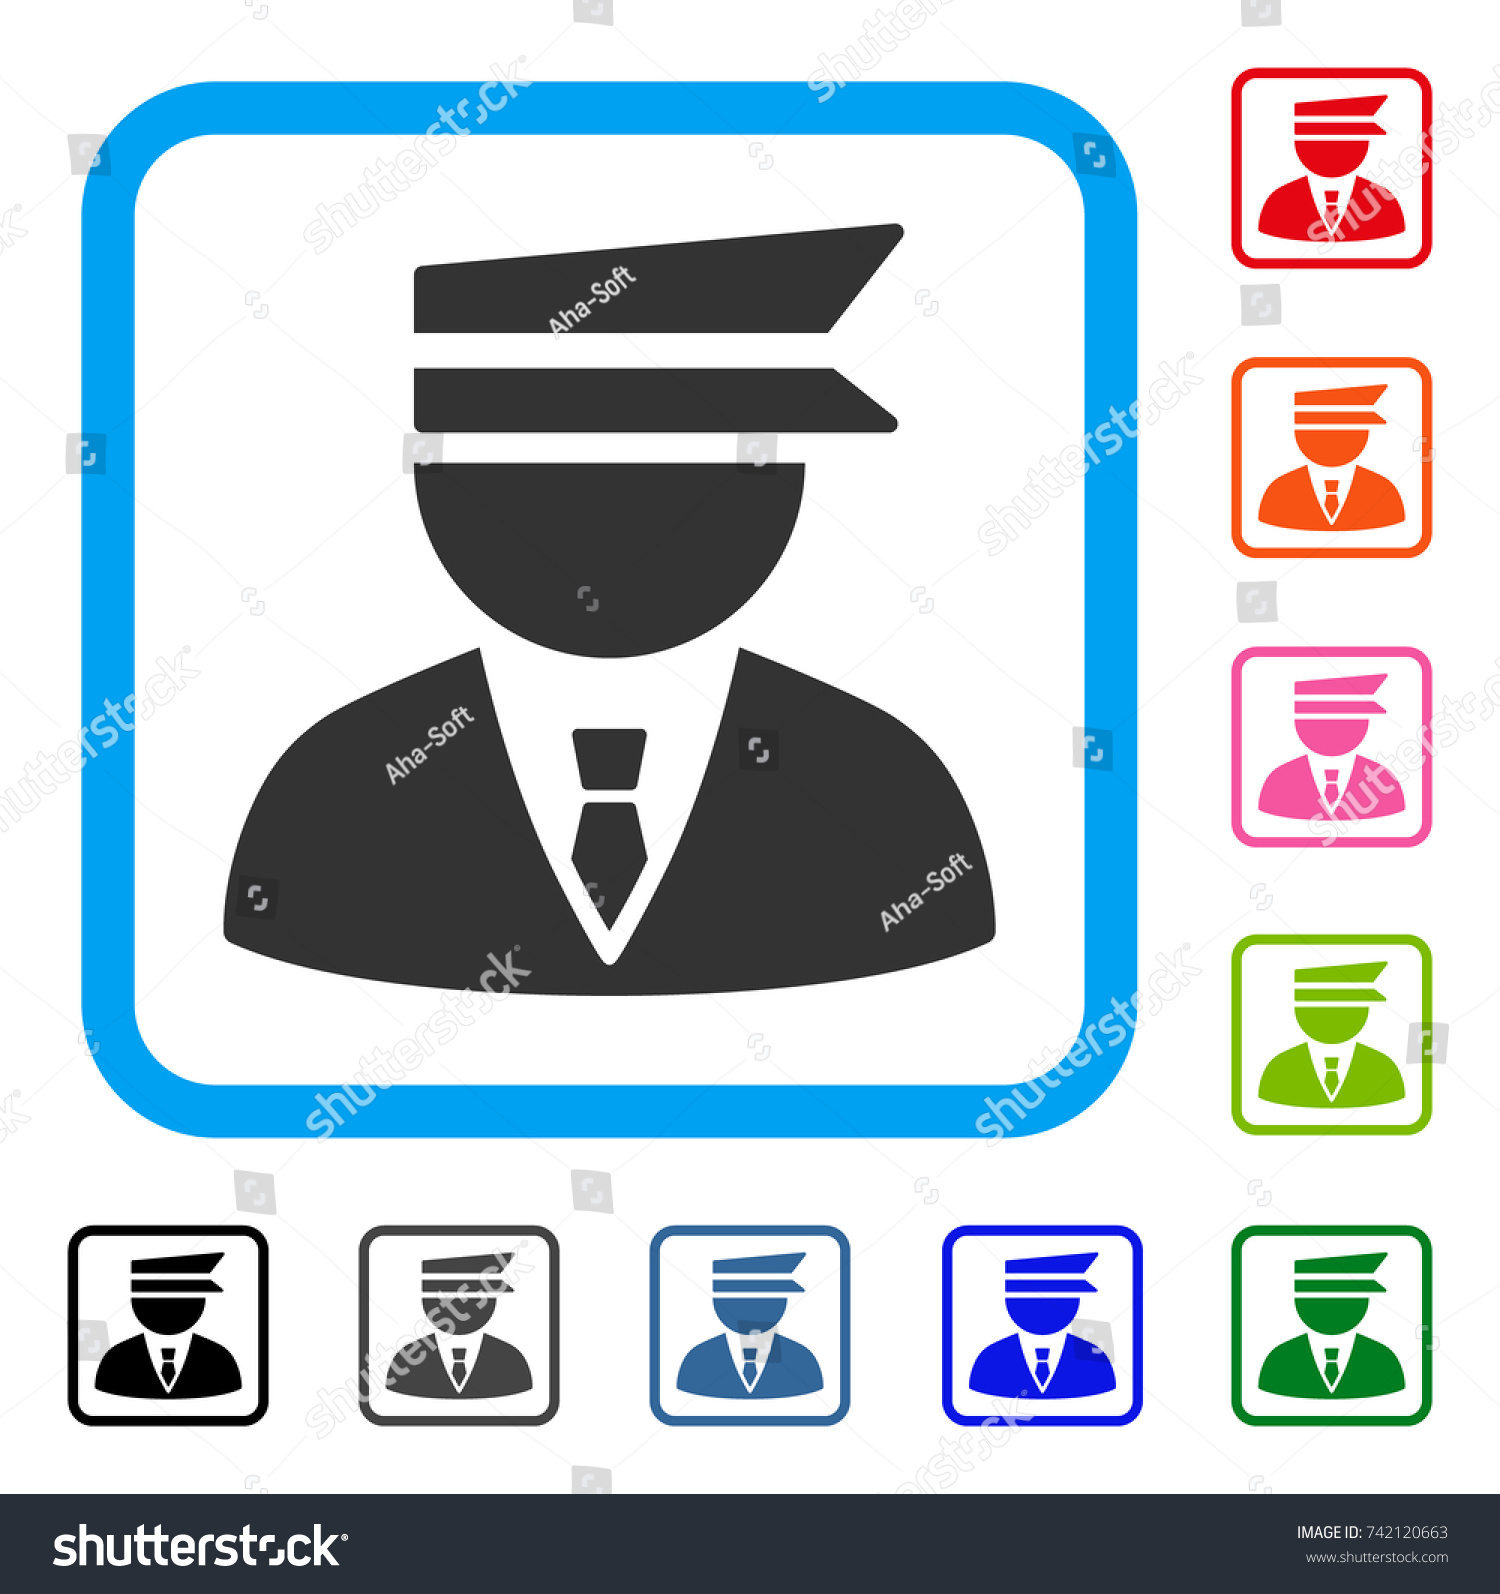 Police Officer Icon Flat Grey Pictogram Stock Vector 742120663